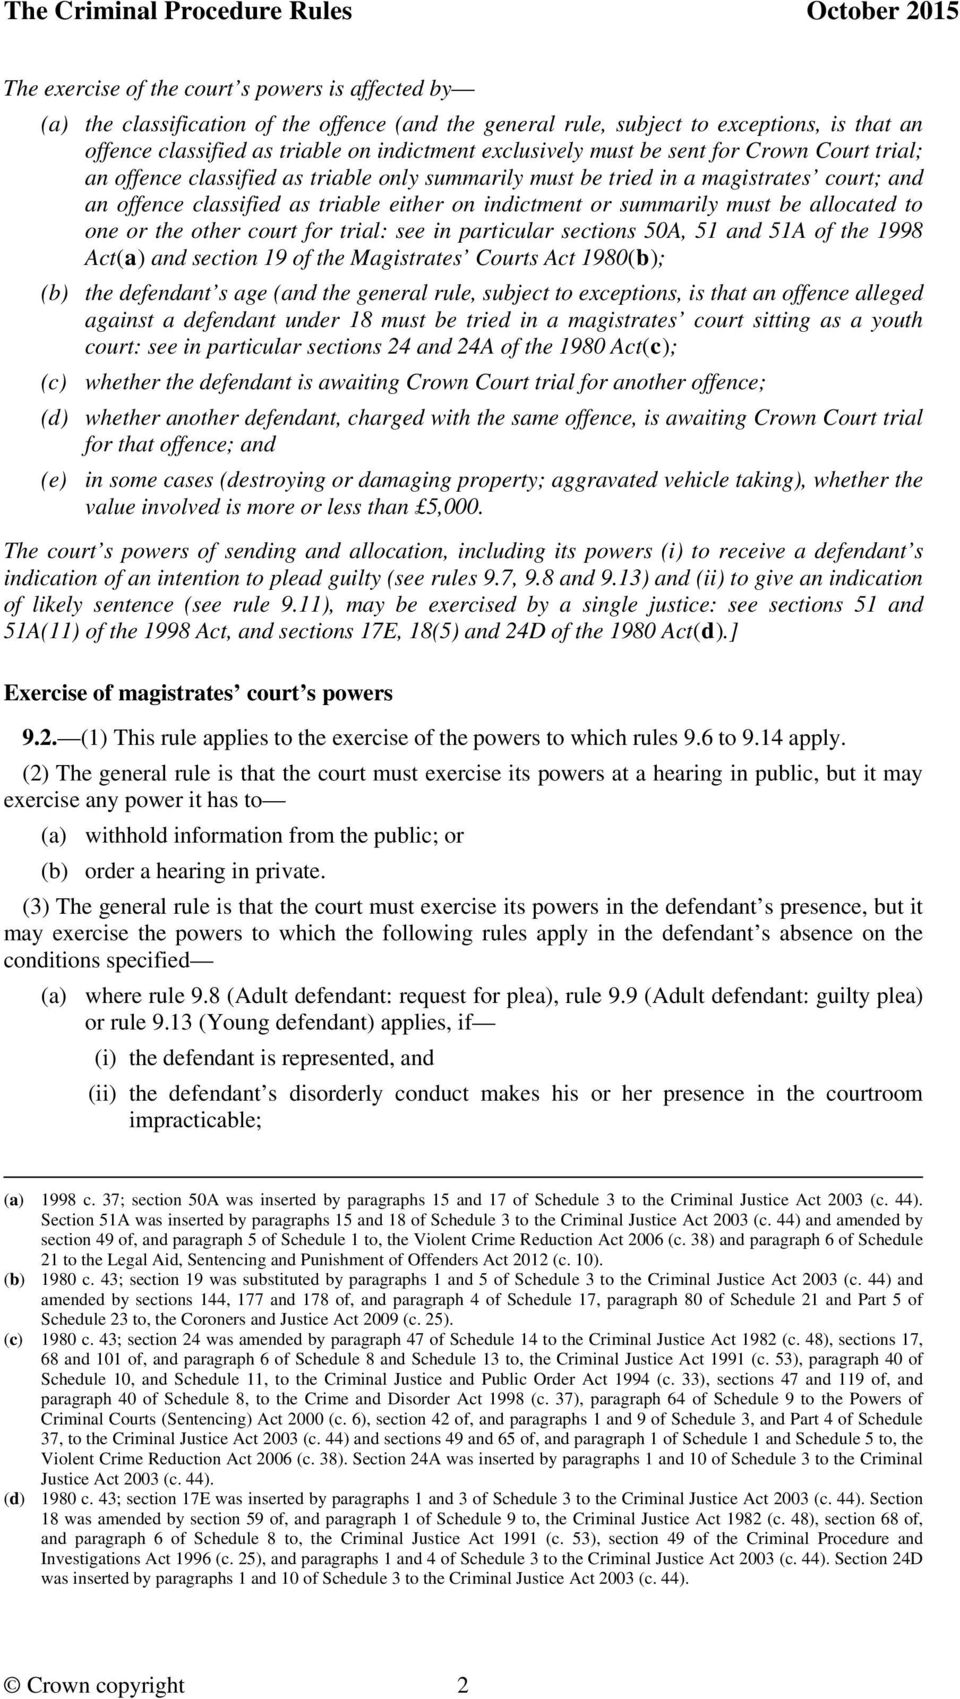 summarily must be allocated to one or the other court for trial: see in particular sections 50A, 51 and 51A of the 1998 Act(a) and section 19 of the Magistrates Courts Act 1980(b); (b) the defendant